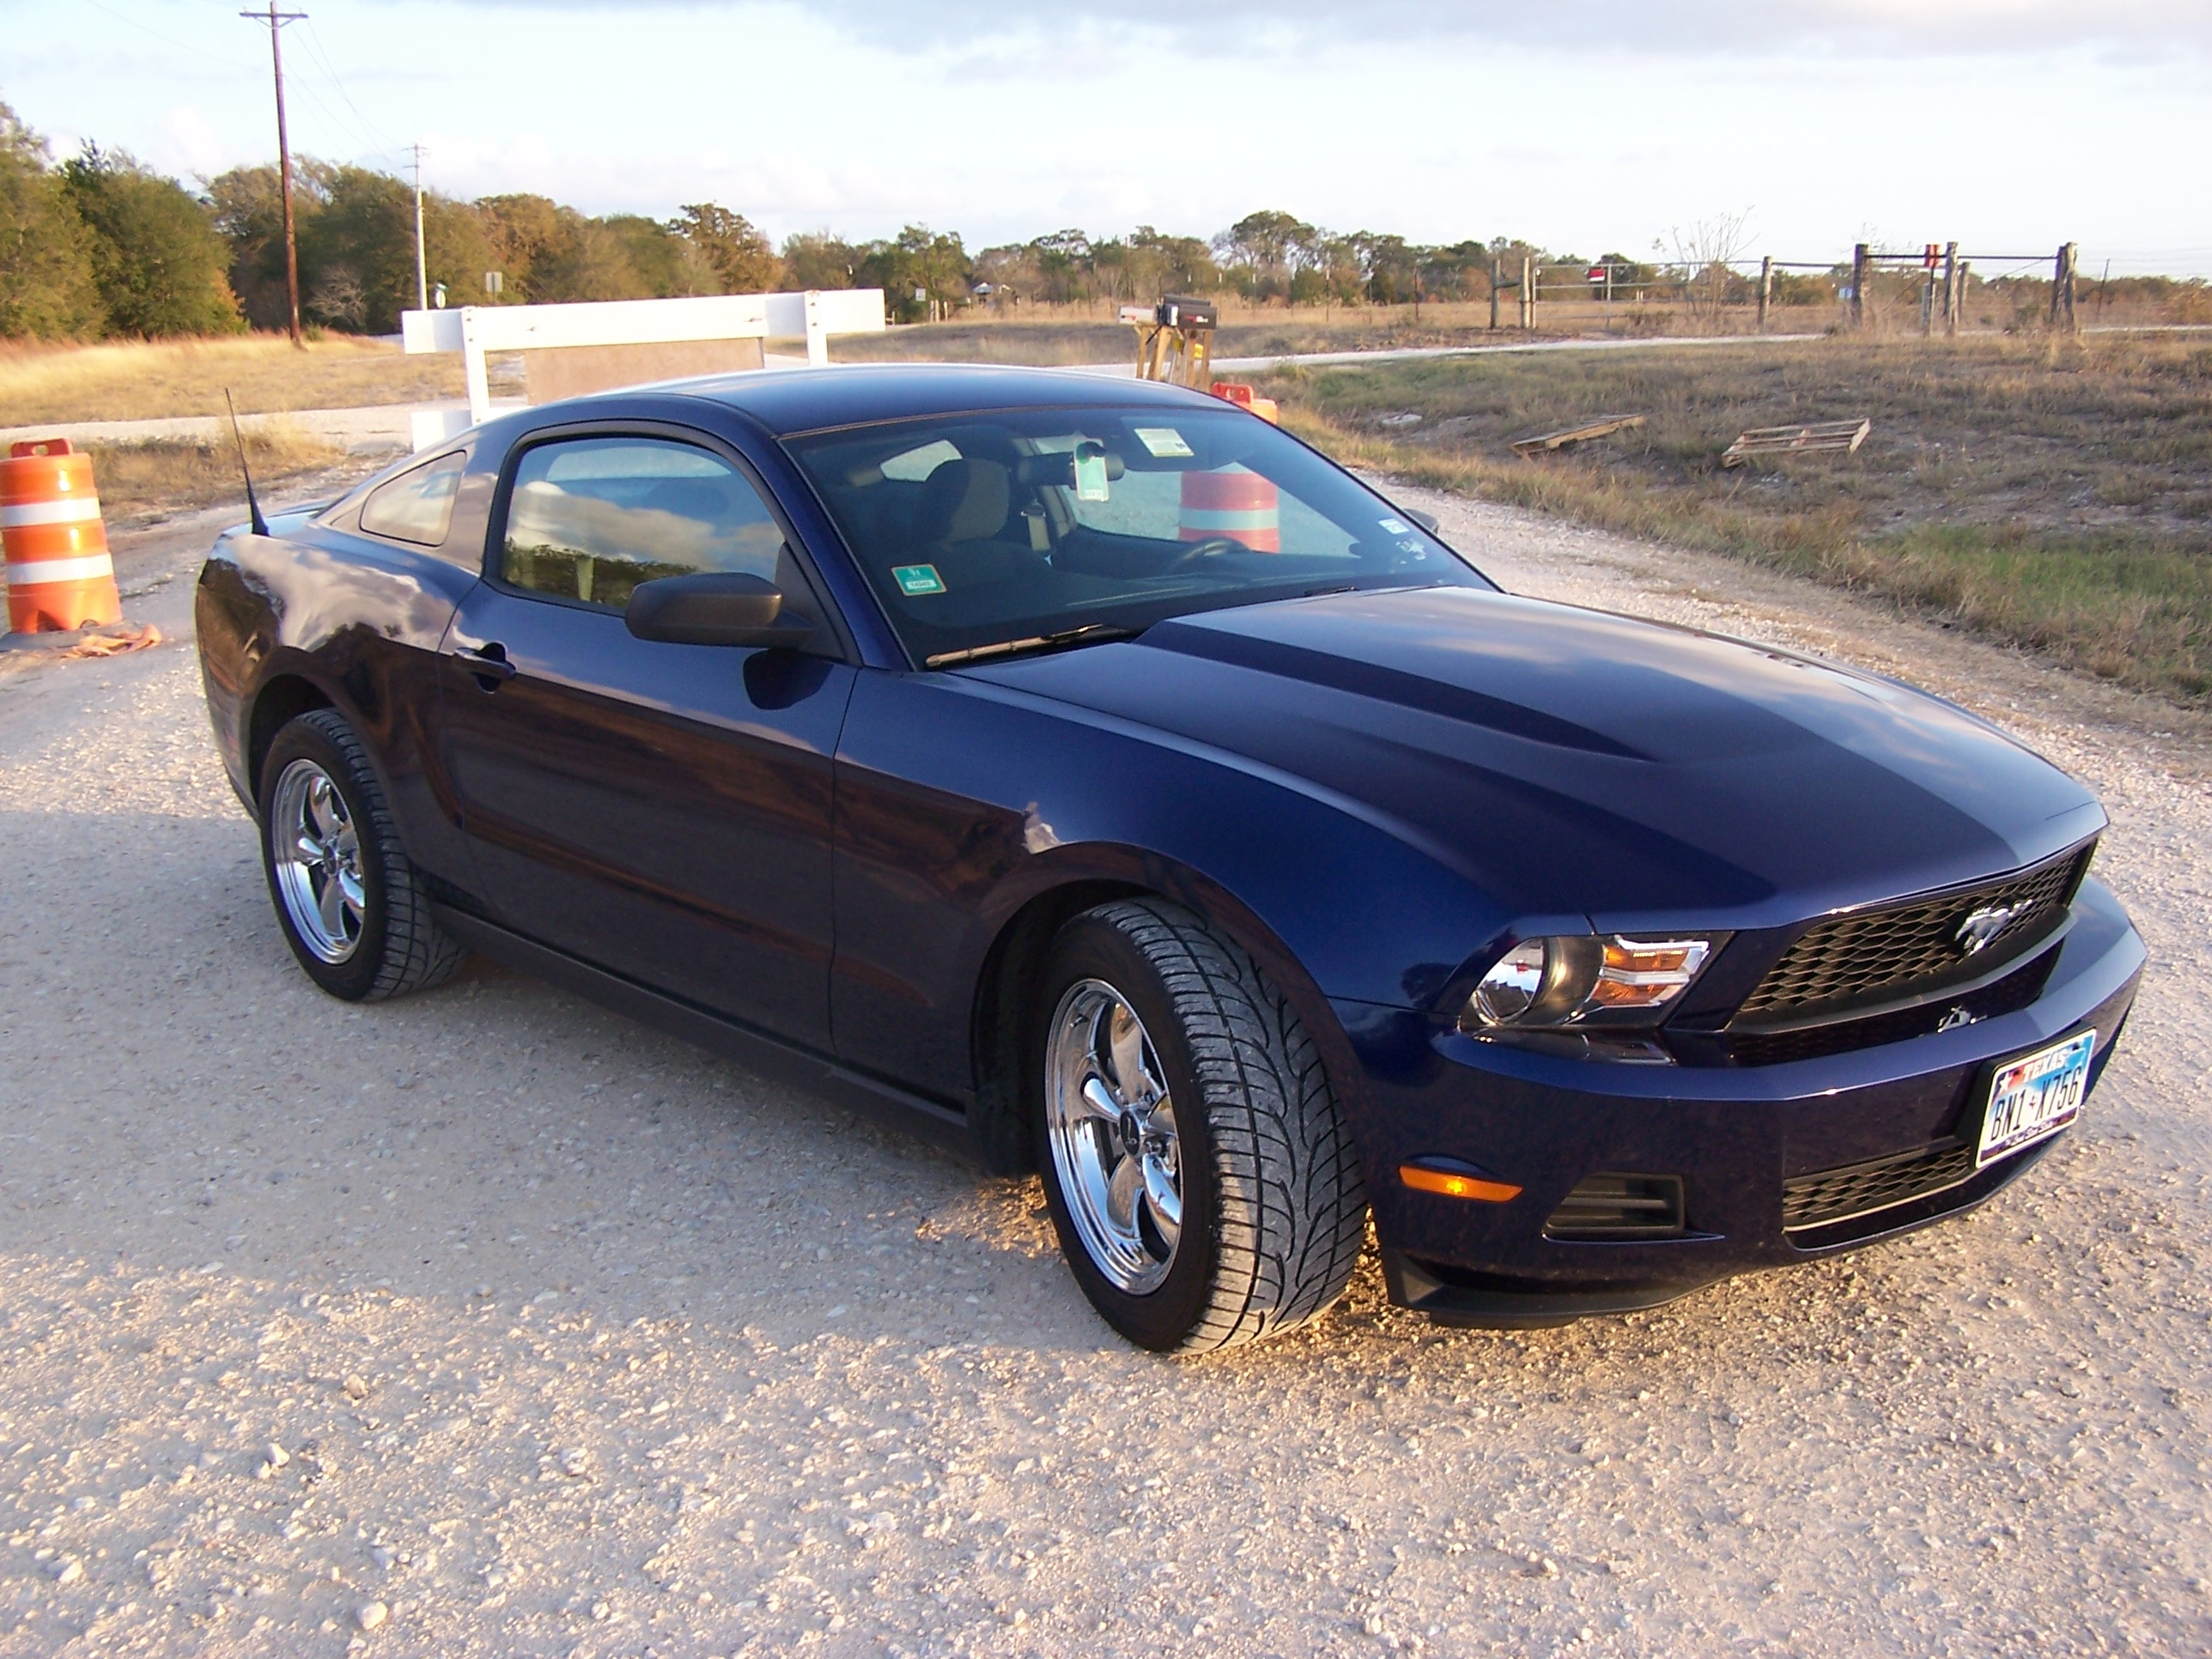 blackstang05 39 s 2010 ford mustang coupe 2d in college station tx. Black Bedroom Furniture Sets. Home Design Ideas